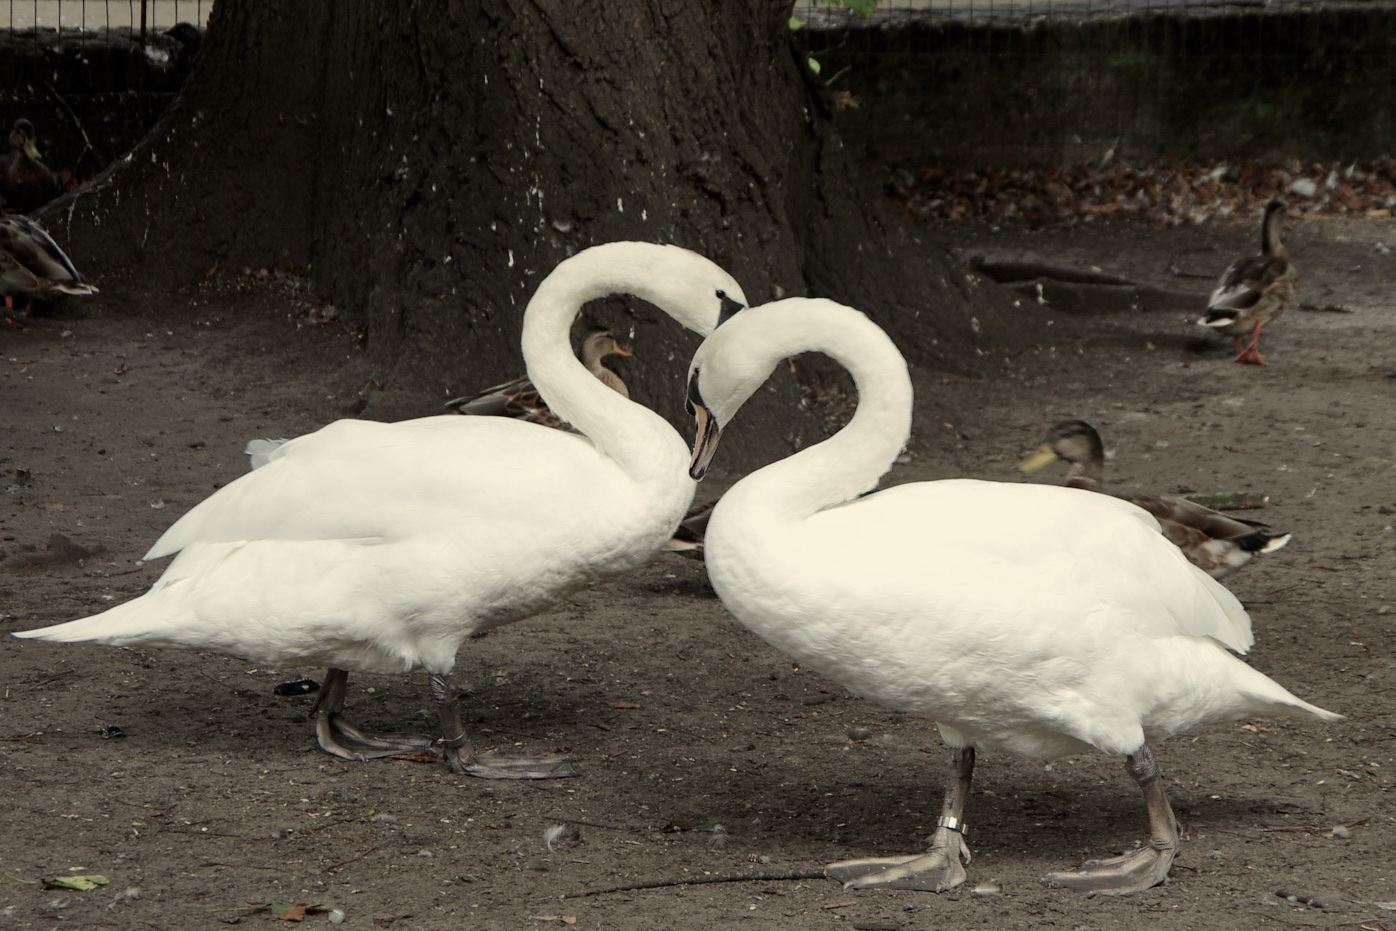 Two Swans Form a Heart - photo by Joel Dauteuil